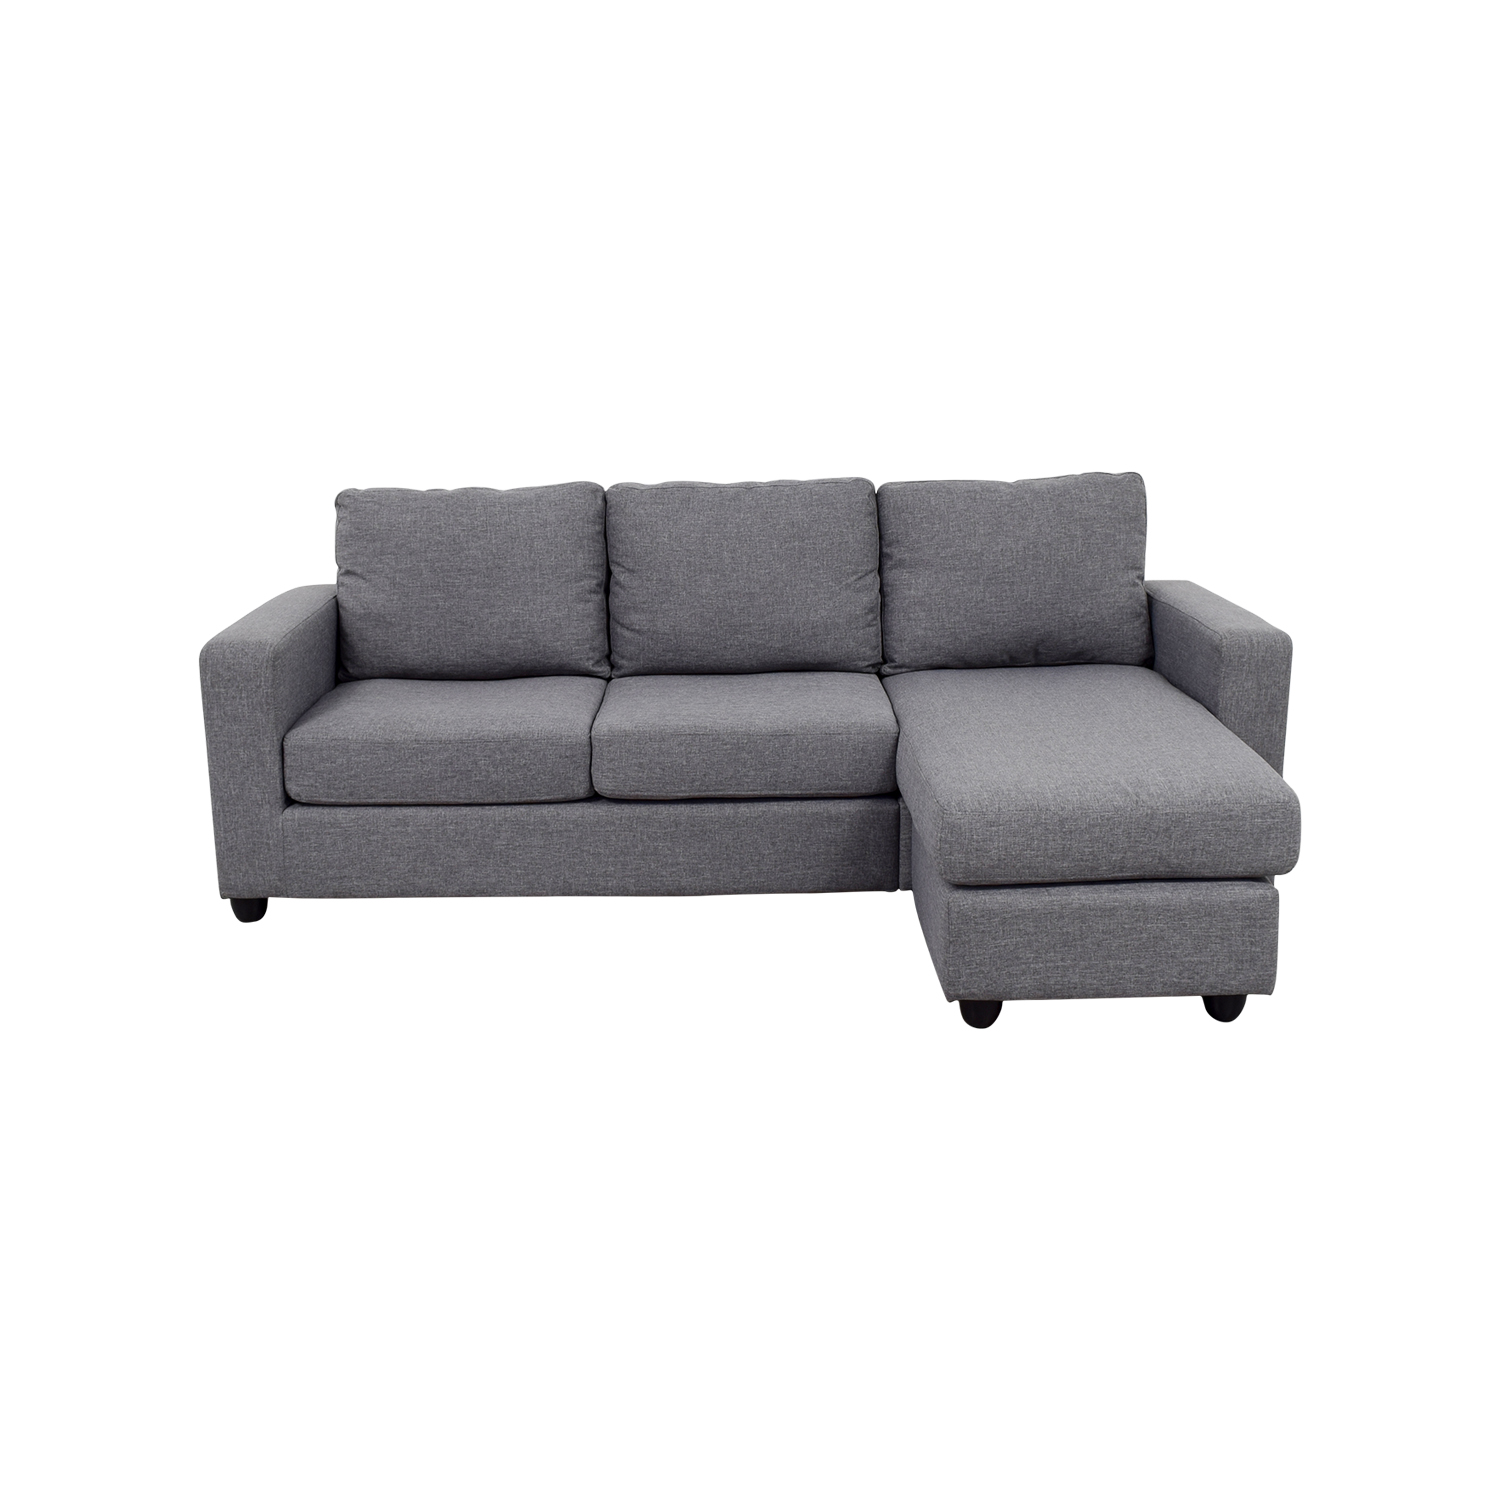 L Sofa 35 Off Grey L Shaped Chaise Couch Sofas